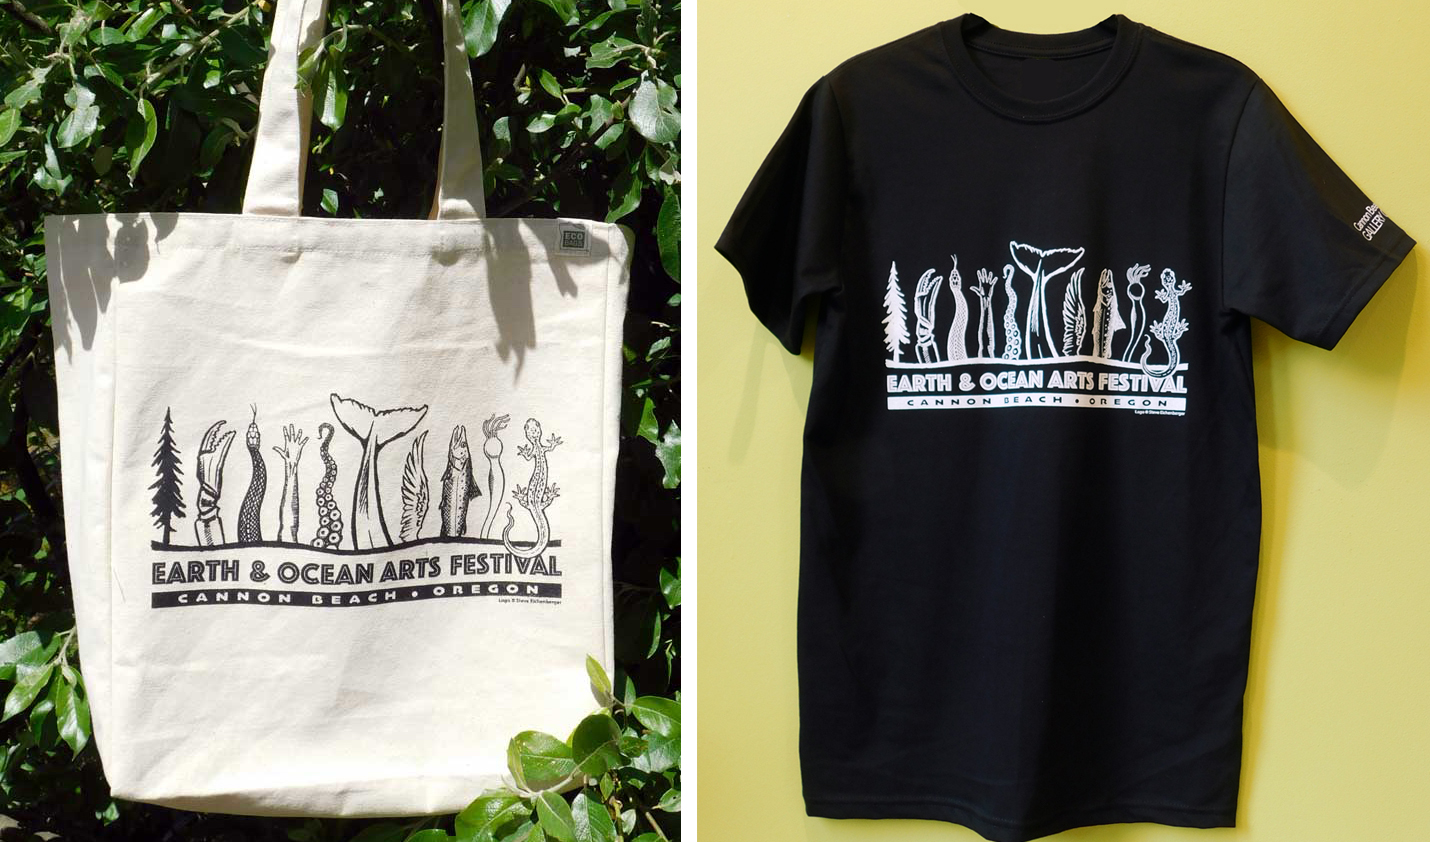 Included with the purchase of the Event Pass is a beautiful and sturdy tote bag made from 100% recycled cotton. There is a limited number of bags available for direct sale at $18. Organic cotton event t-shirts are also available for $28. These basic black shirts show off the Earth & Ocean logo beautifully and are incredibly soft and comfortable. Call DragonFire Gallery at 503-436-1533 to purchase both items.